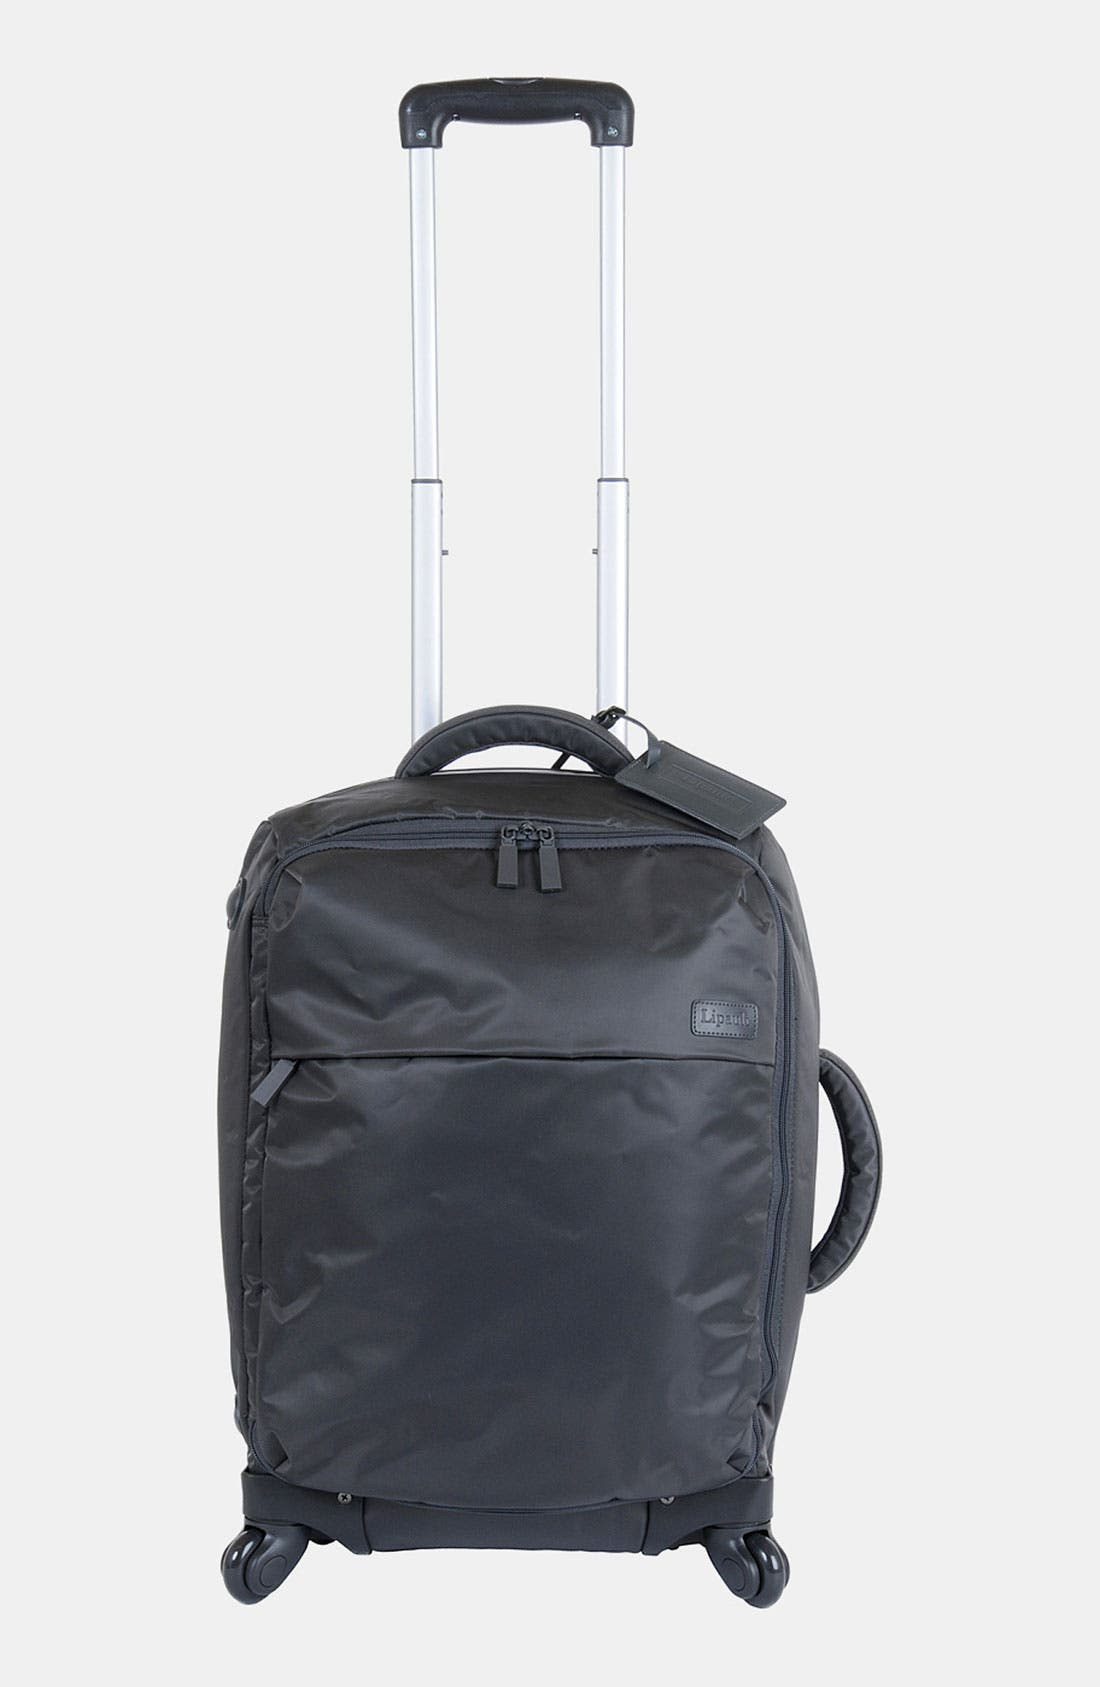 Alternate Image 1 Selected - LIPAULT Paris 4-Wheel Carry-On (22 Inch)